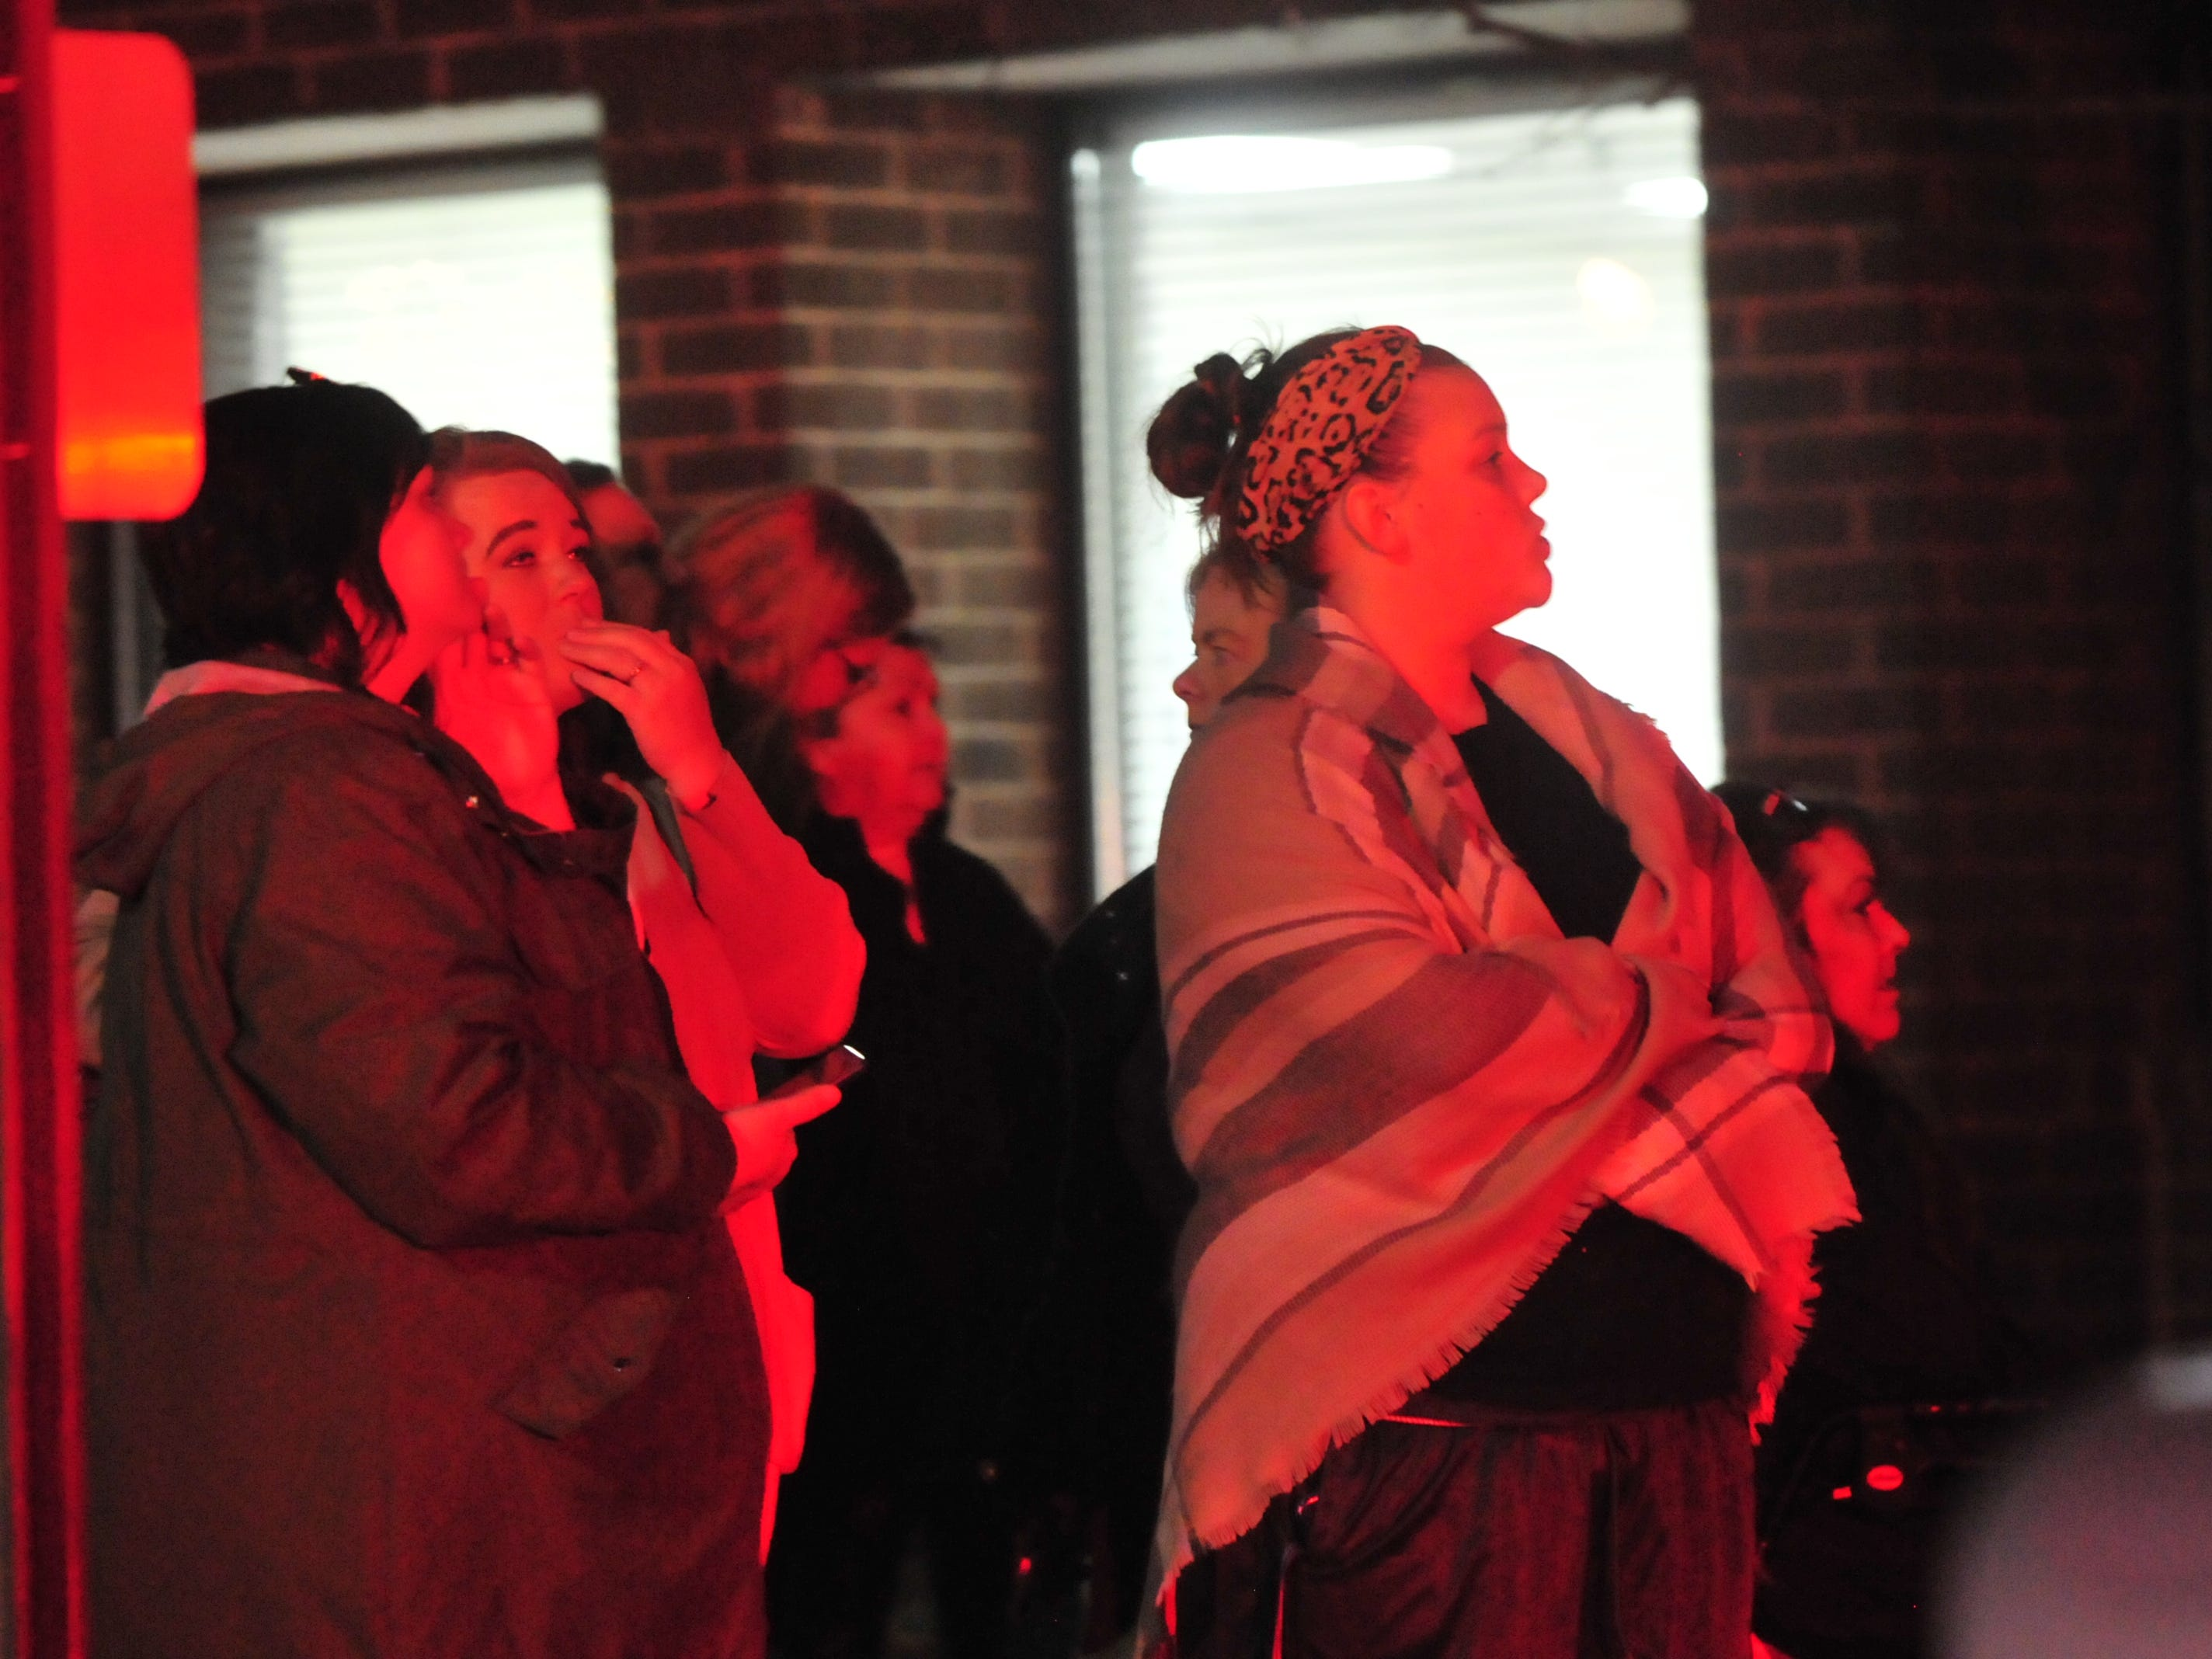 Residents and others watch as Richmond Fire Department fought a fire Monday evening at Interfaith Apartments.